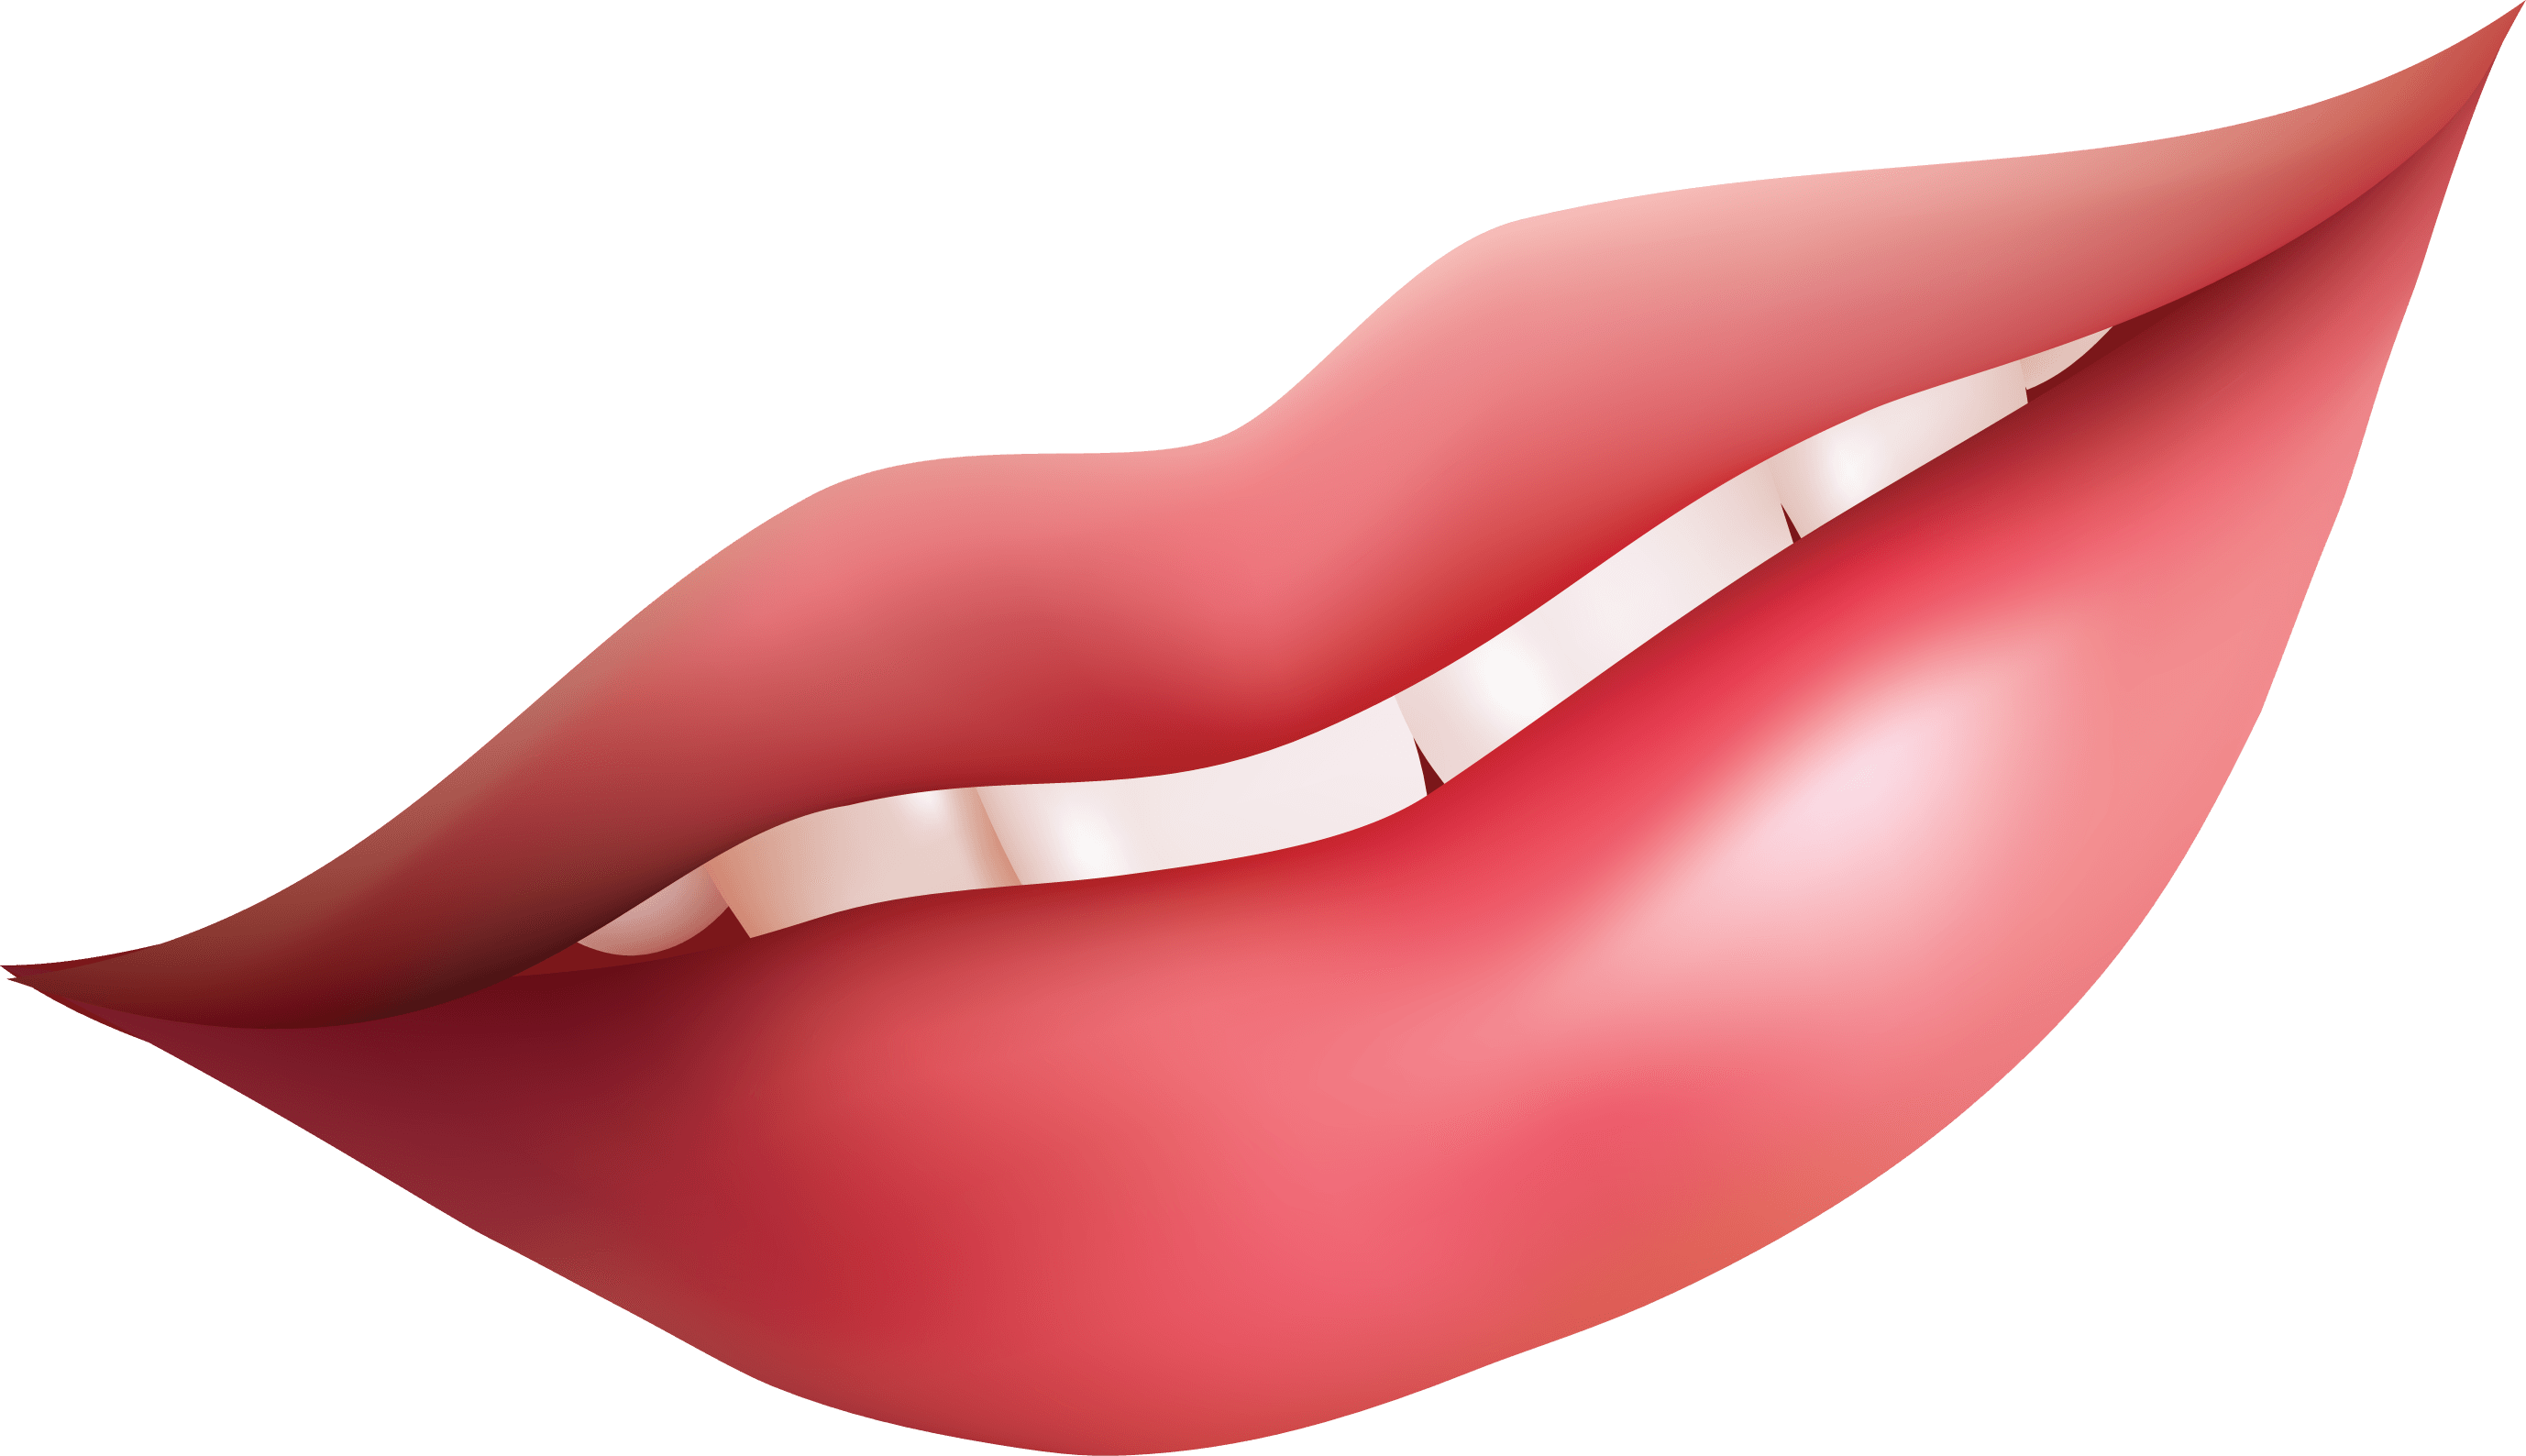 2755x1588 Pink Mouth Cliparts 244859